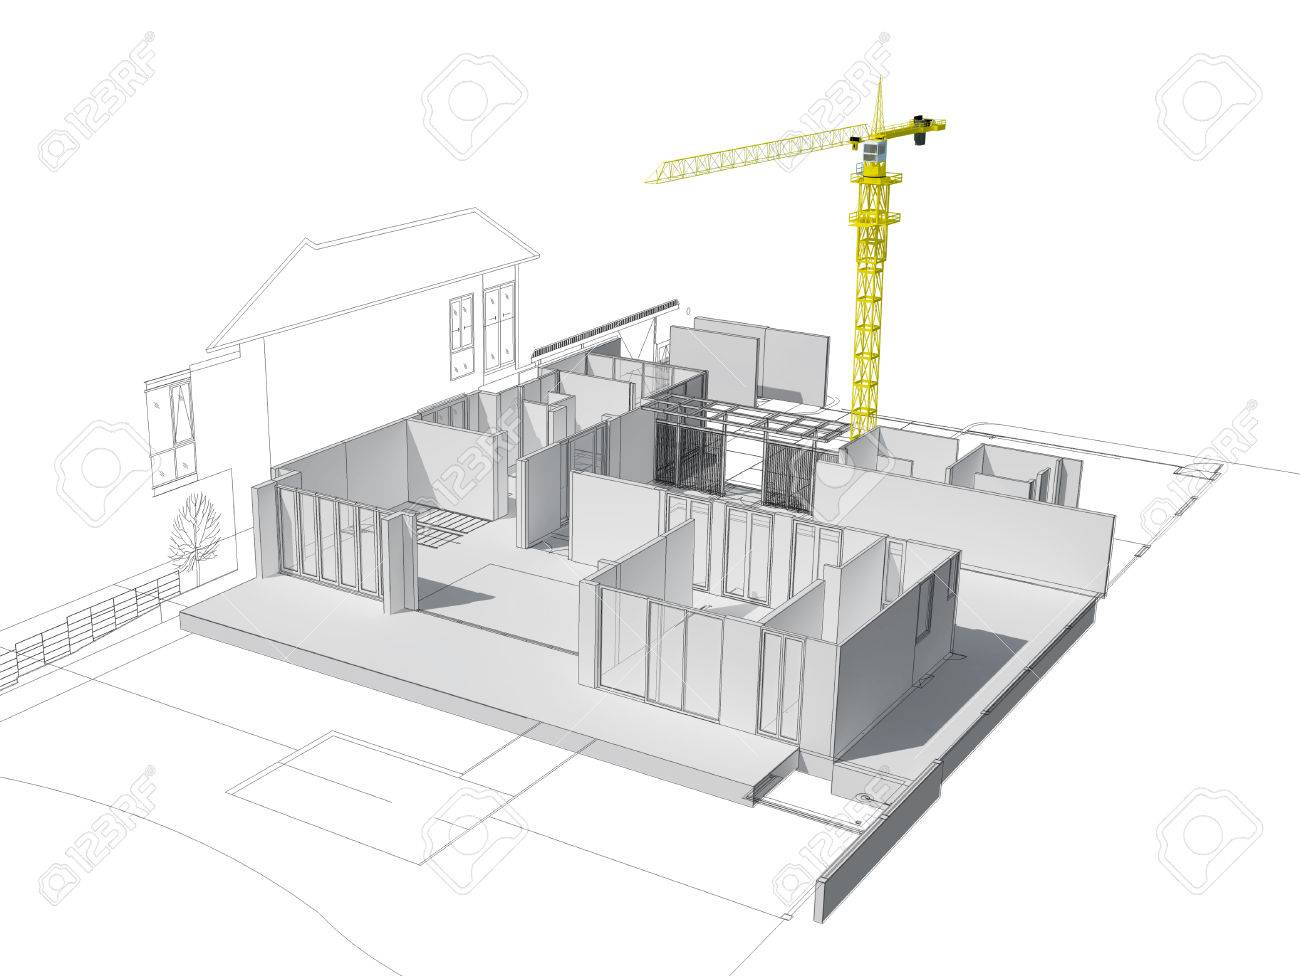 3d Illustration Of Building Design Concept Architects Computer Generated Visualization In Drawing Style Stock Photo